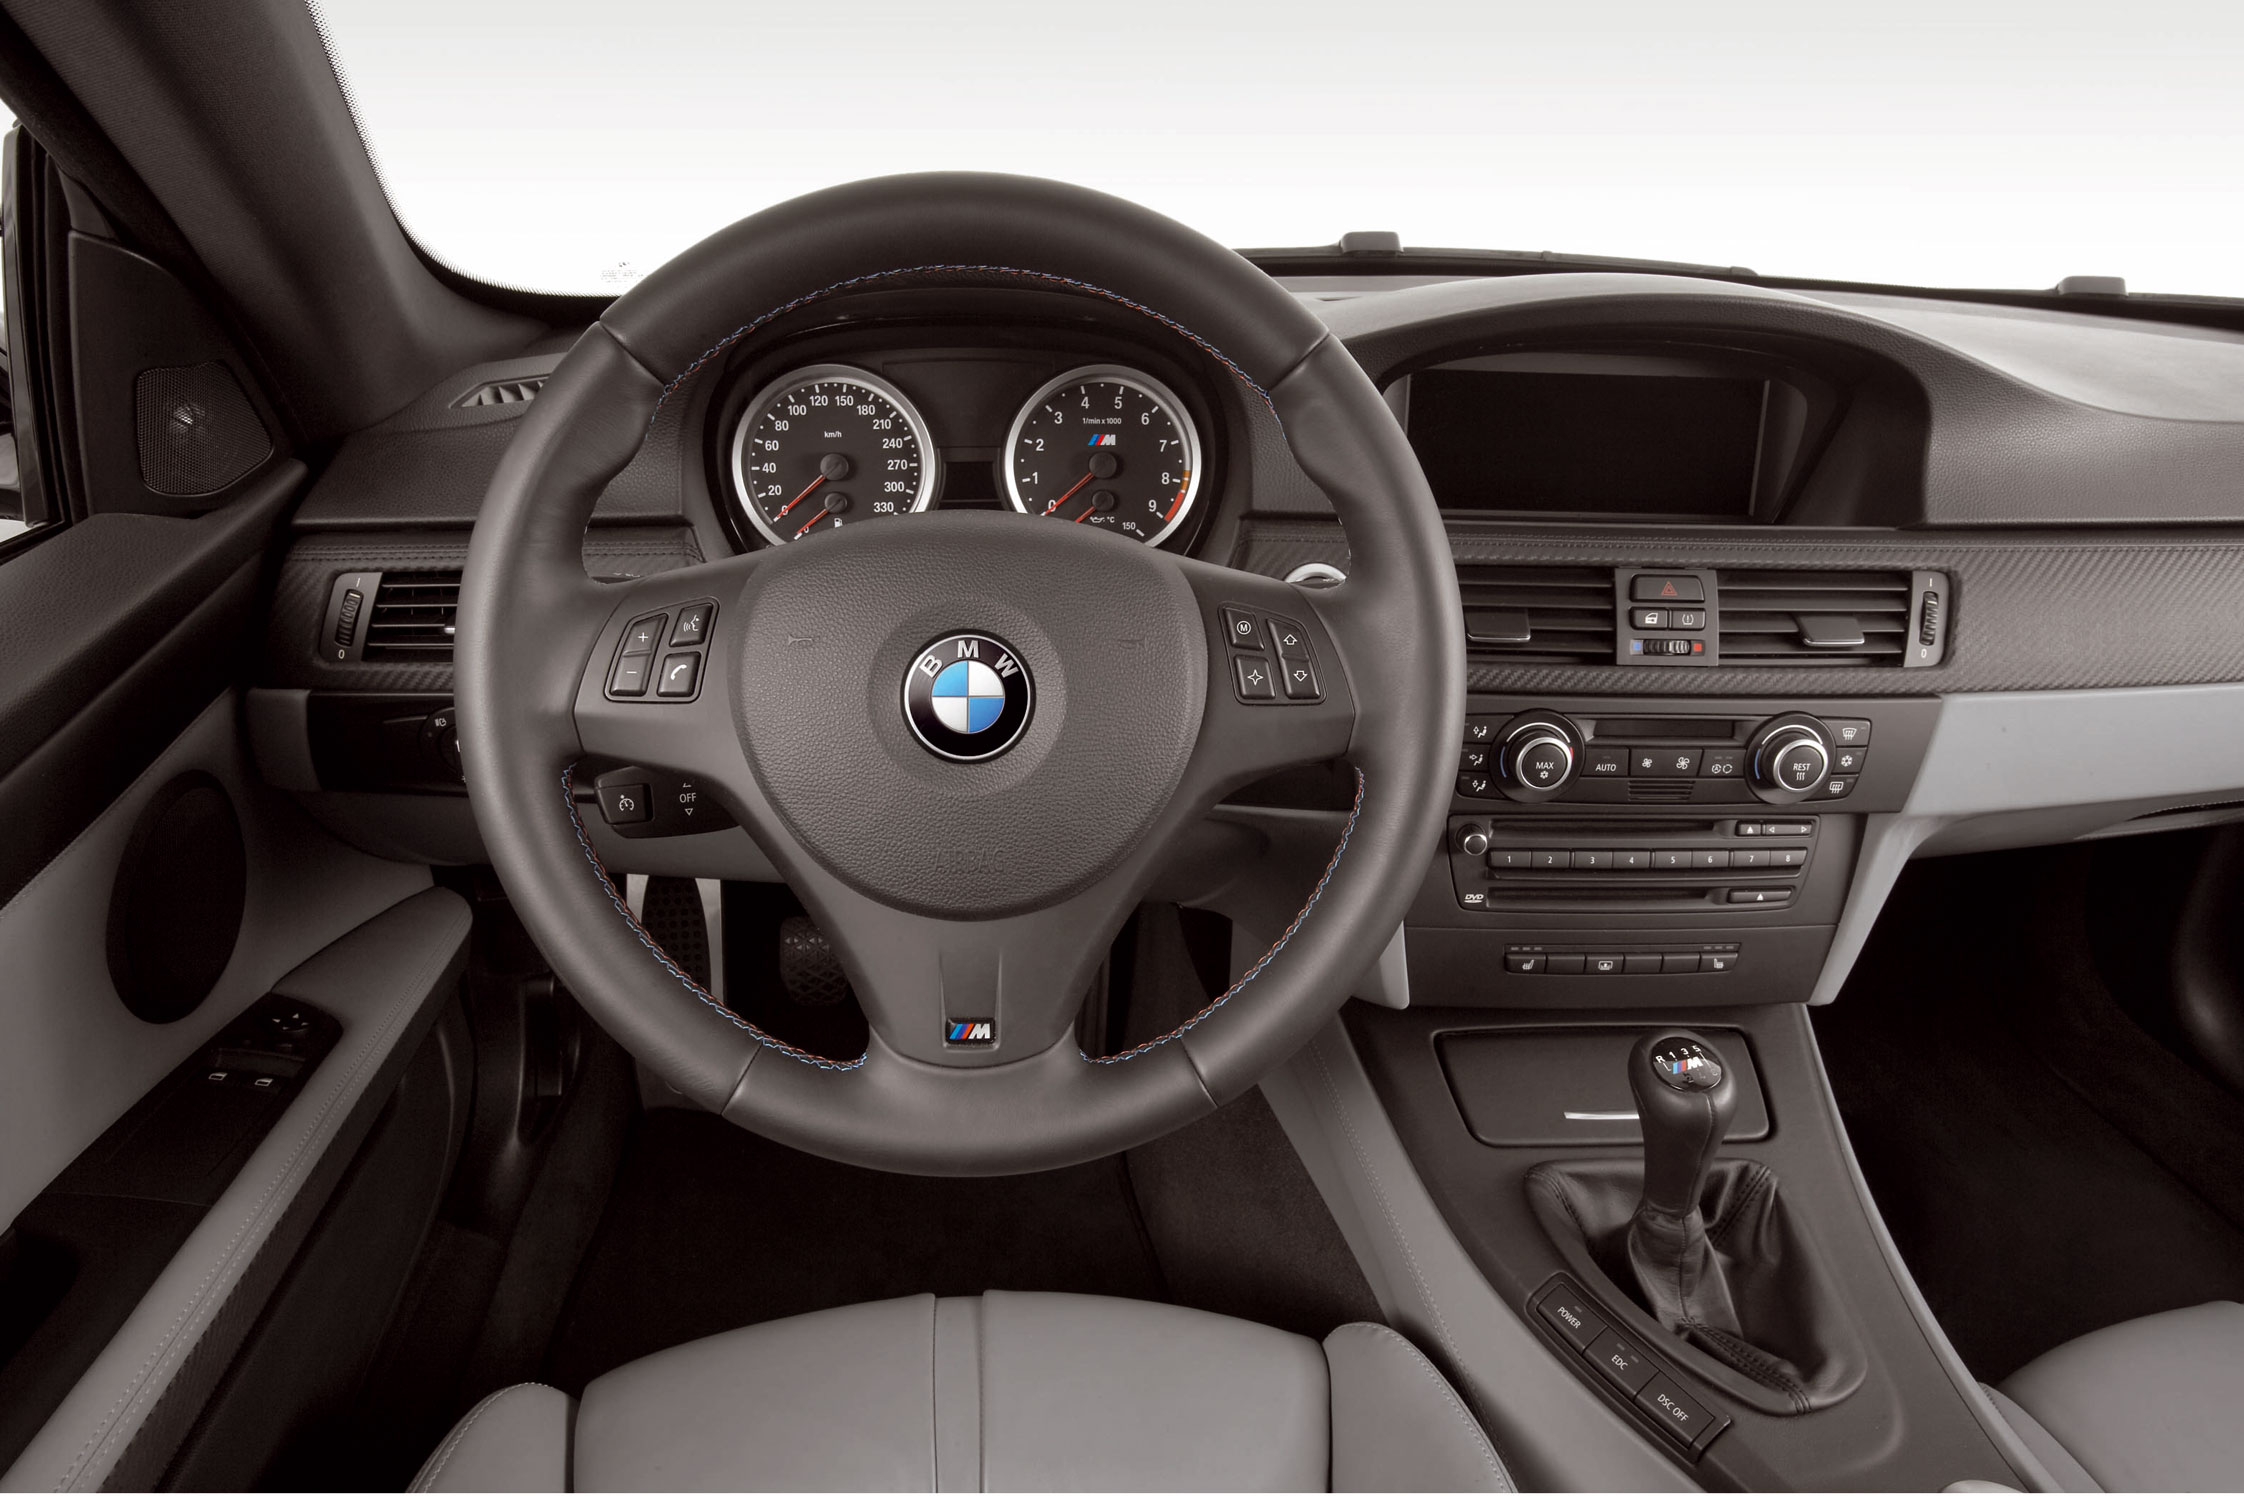 Essai bmw m3 e92 motorlegend for Interieur cuir bmw e90